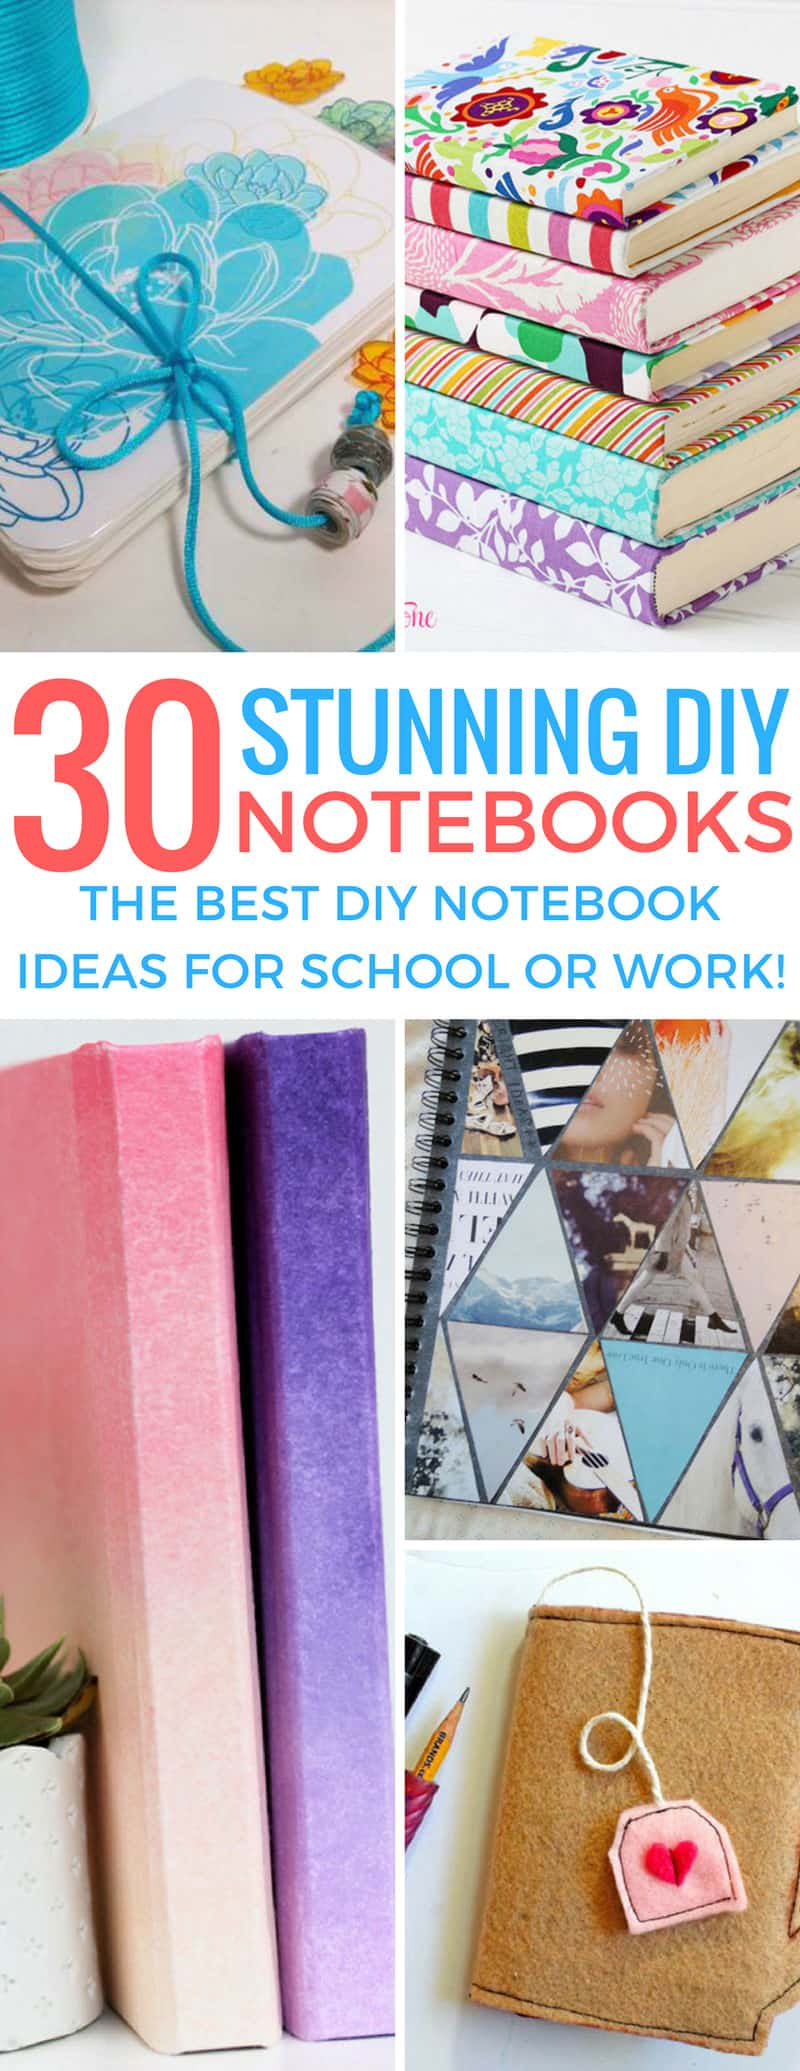 These DIY notebooks look so good no one will actually believe I made them myself! Thanks for sharing!